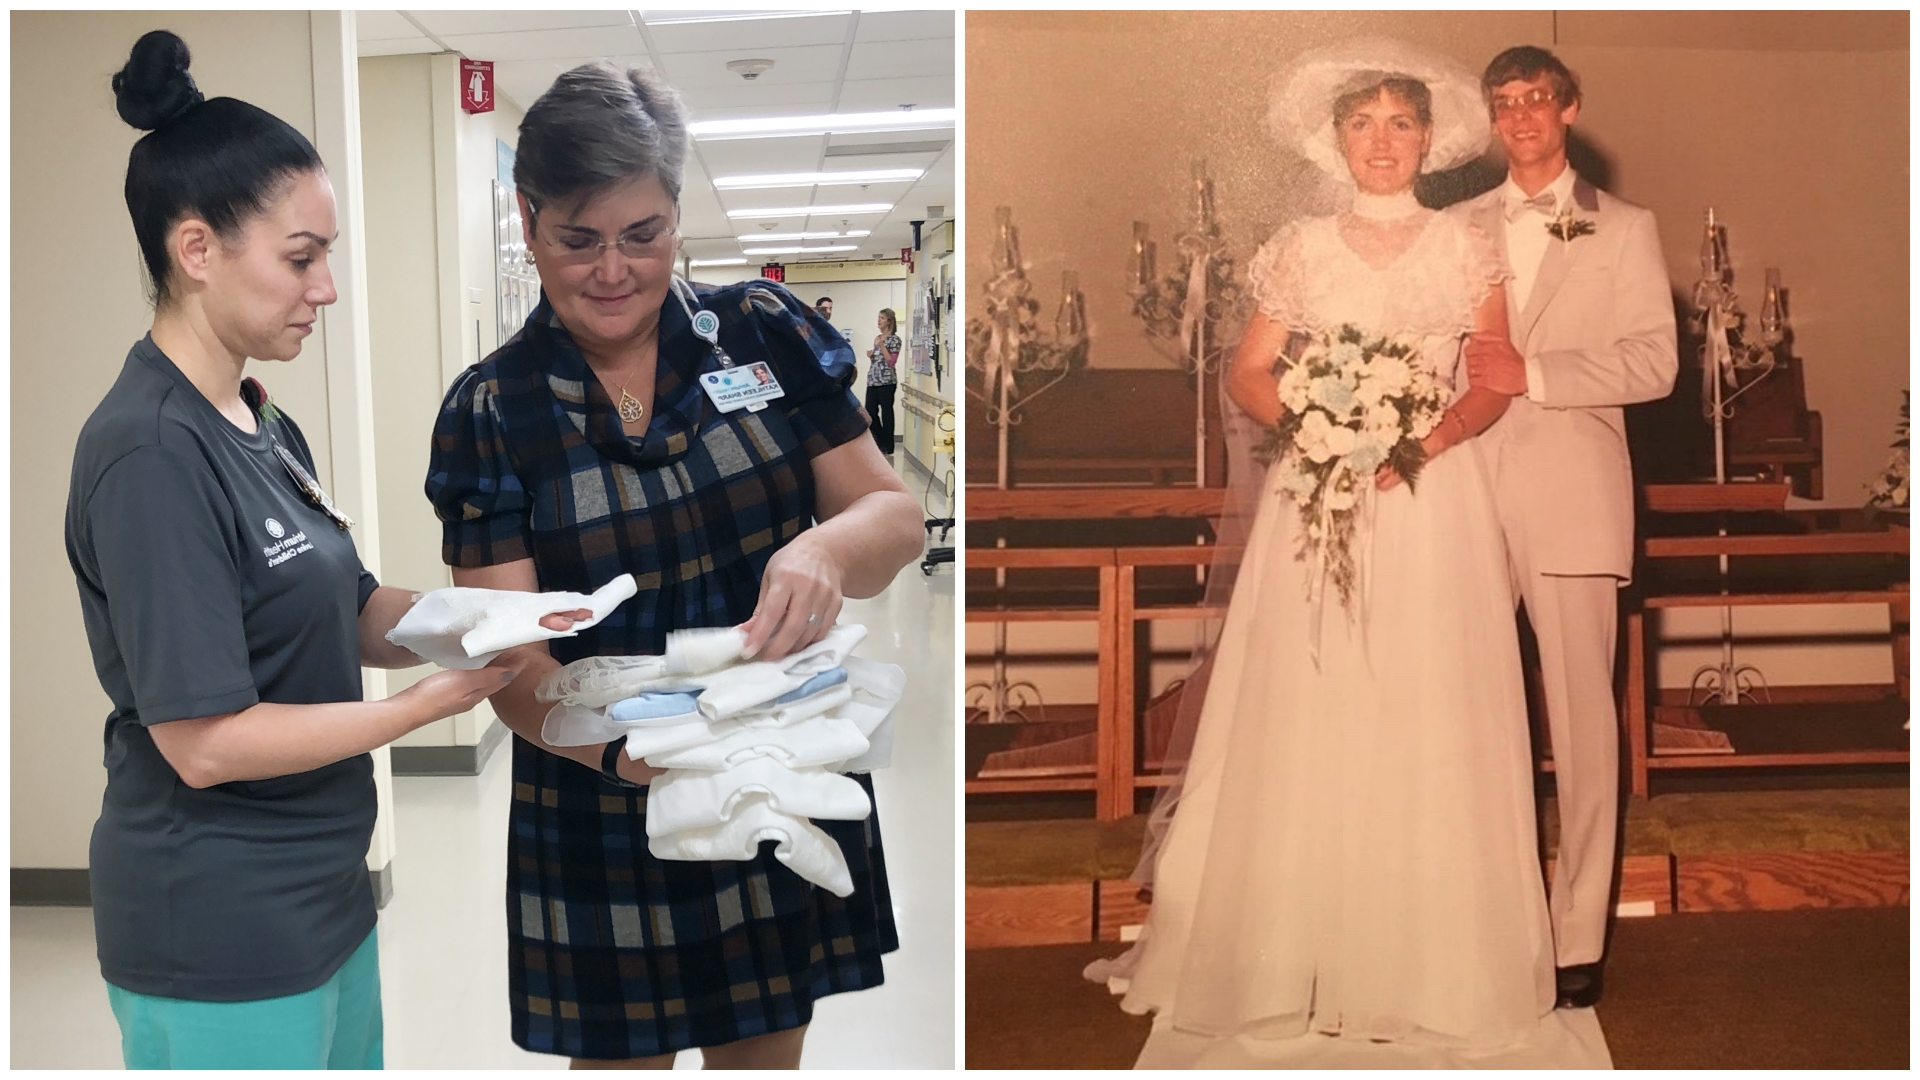 Kathleen Sharp's personal experience with loss inspired her to give back to the Levine Children's Hospital community. Her wedding gown now serves an incredible purpose for the families of infants who don't make it home from the hospital.